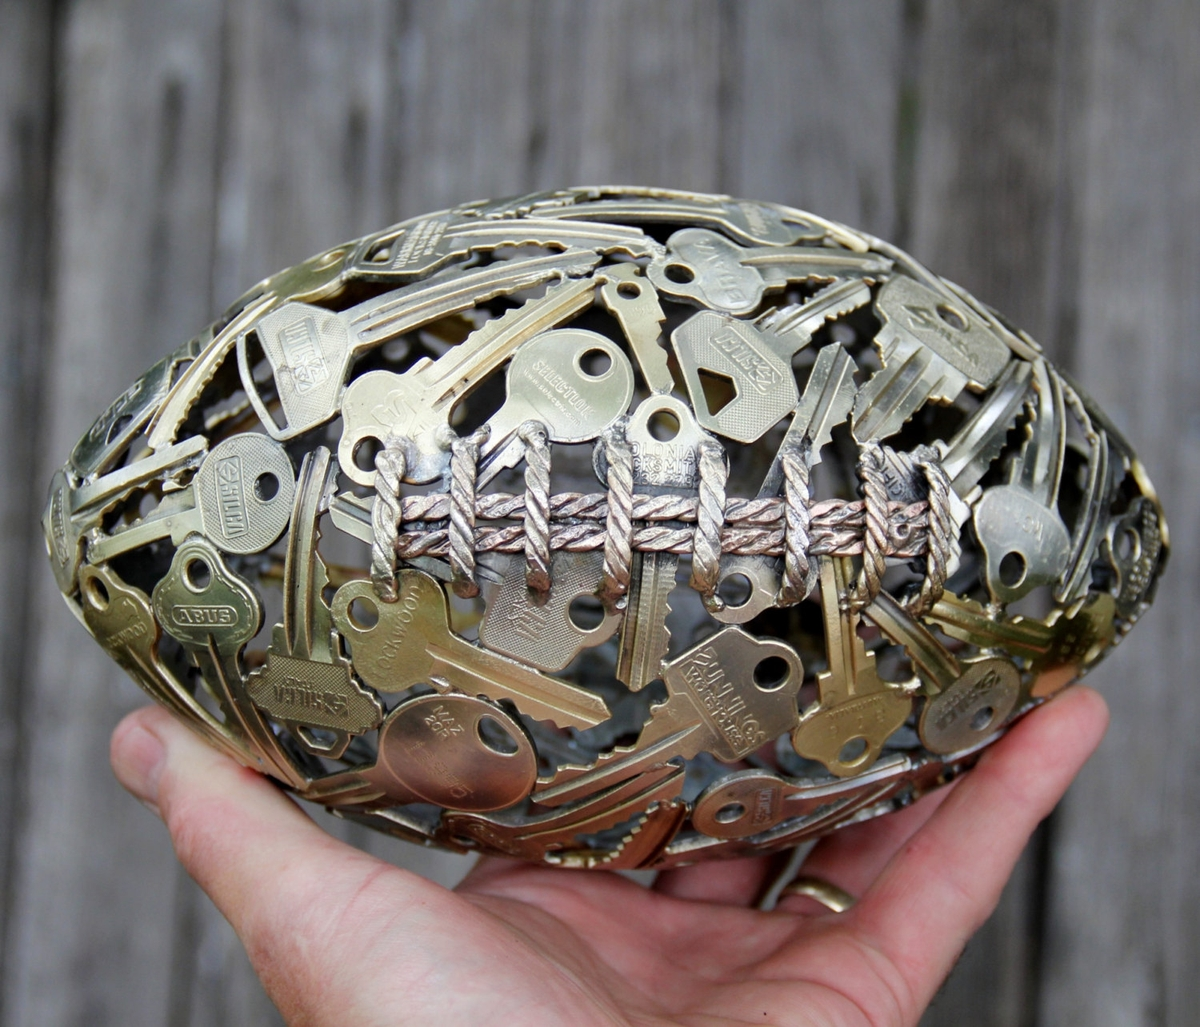 05-Small-NFL-American-Football-Michael-Moerkerk-Upcycling-Keys-to-make-sculptures-and-Accessories-www-designstack-co